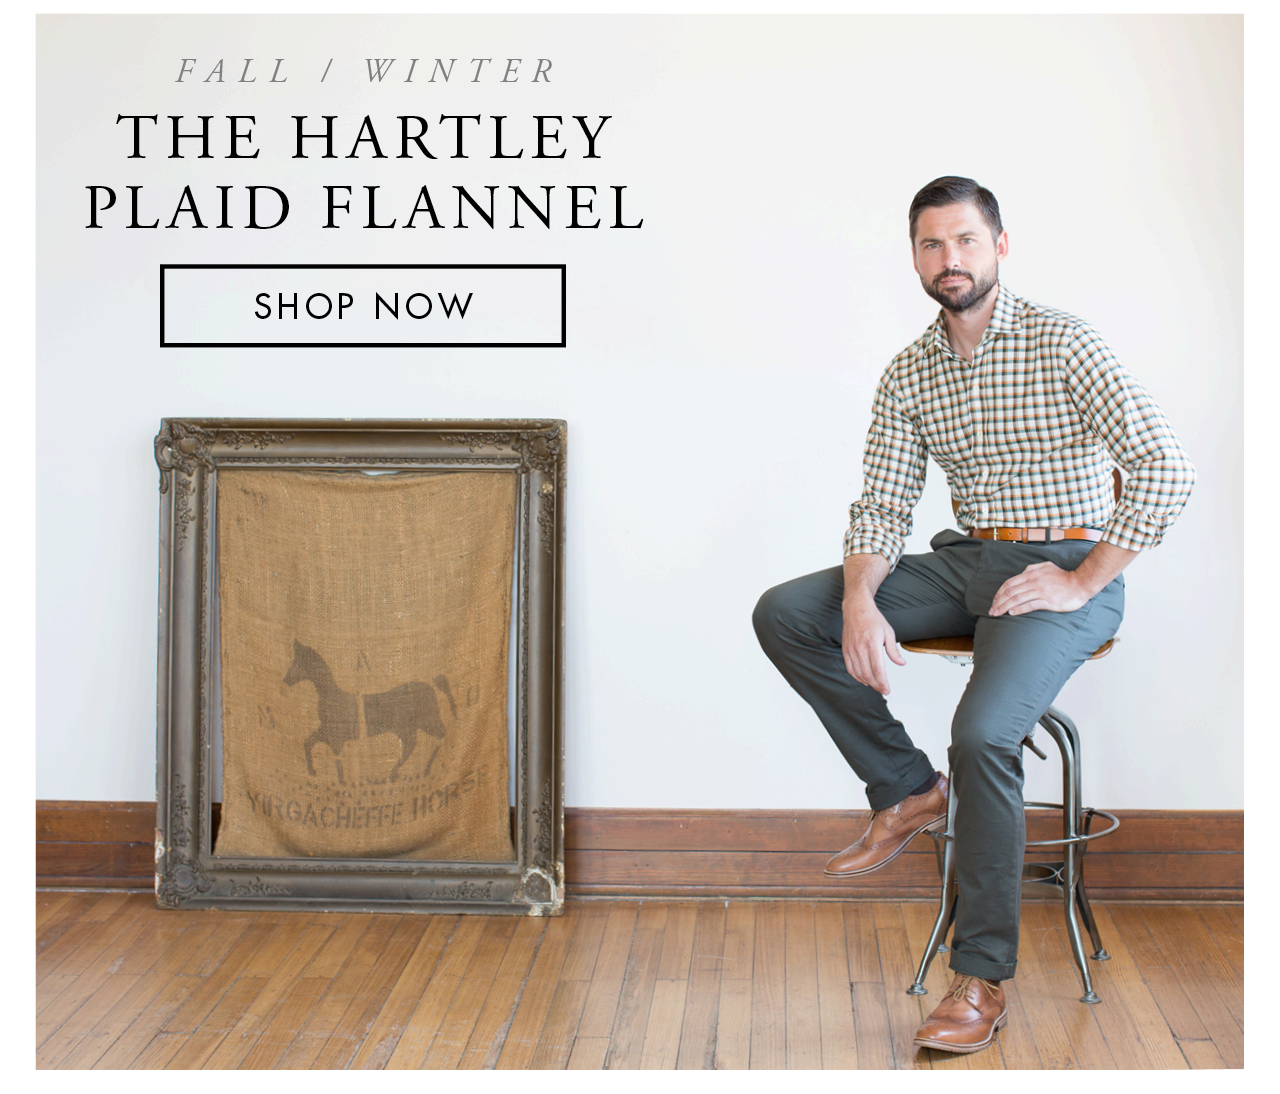 The Hartley Plaid Flannel